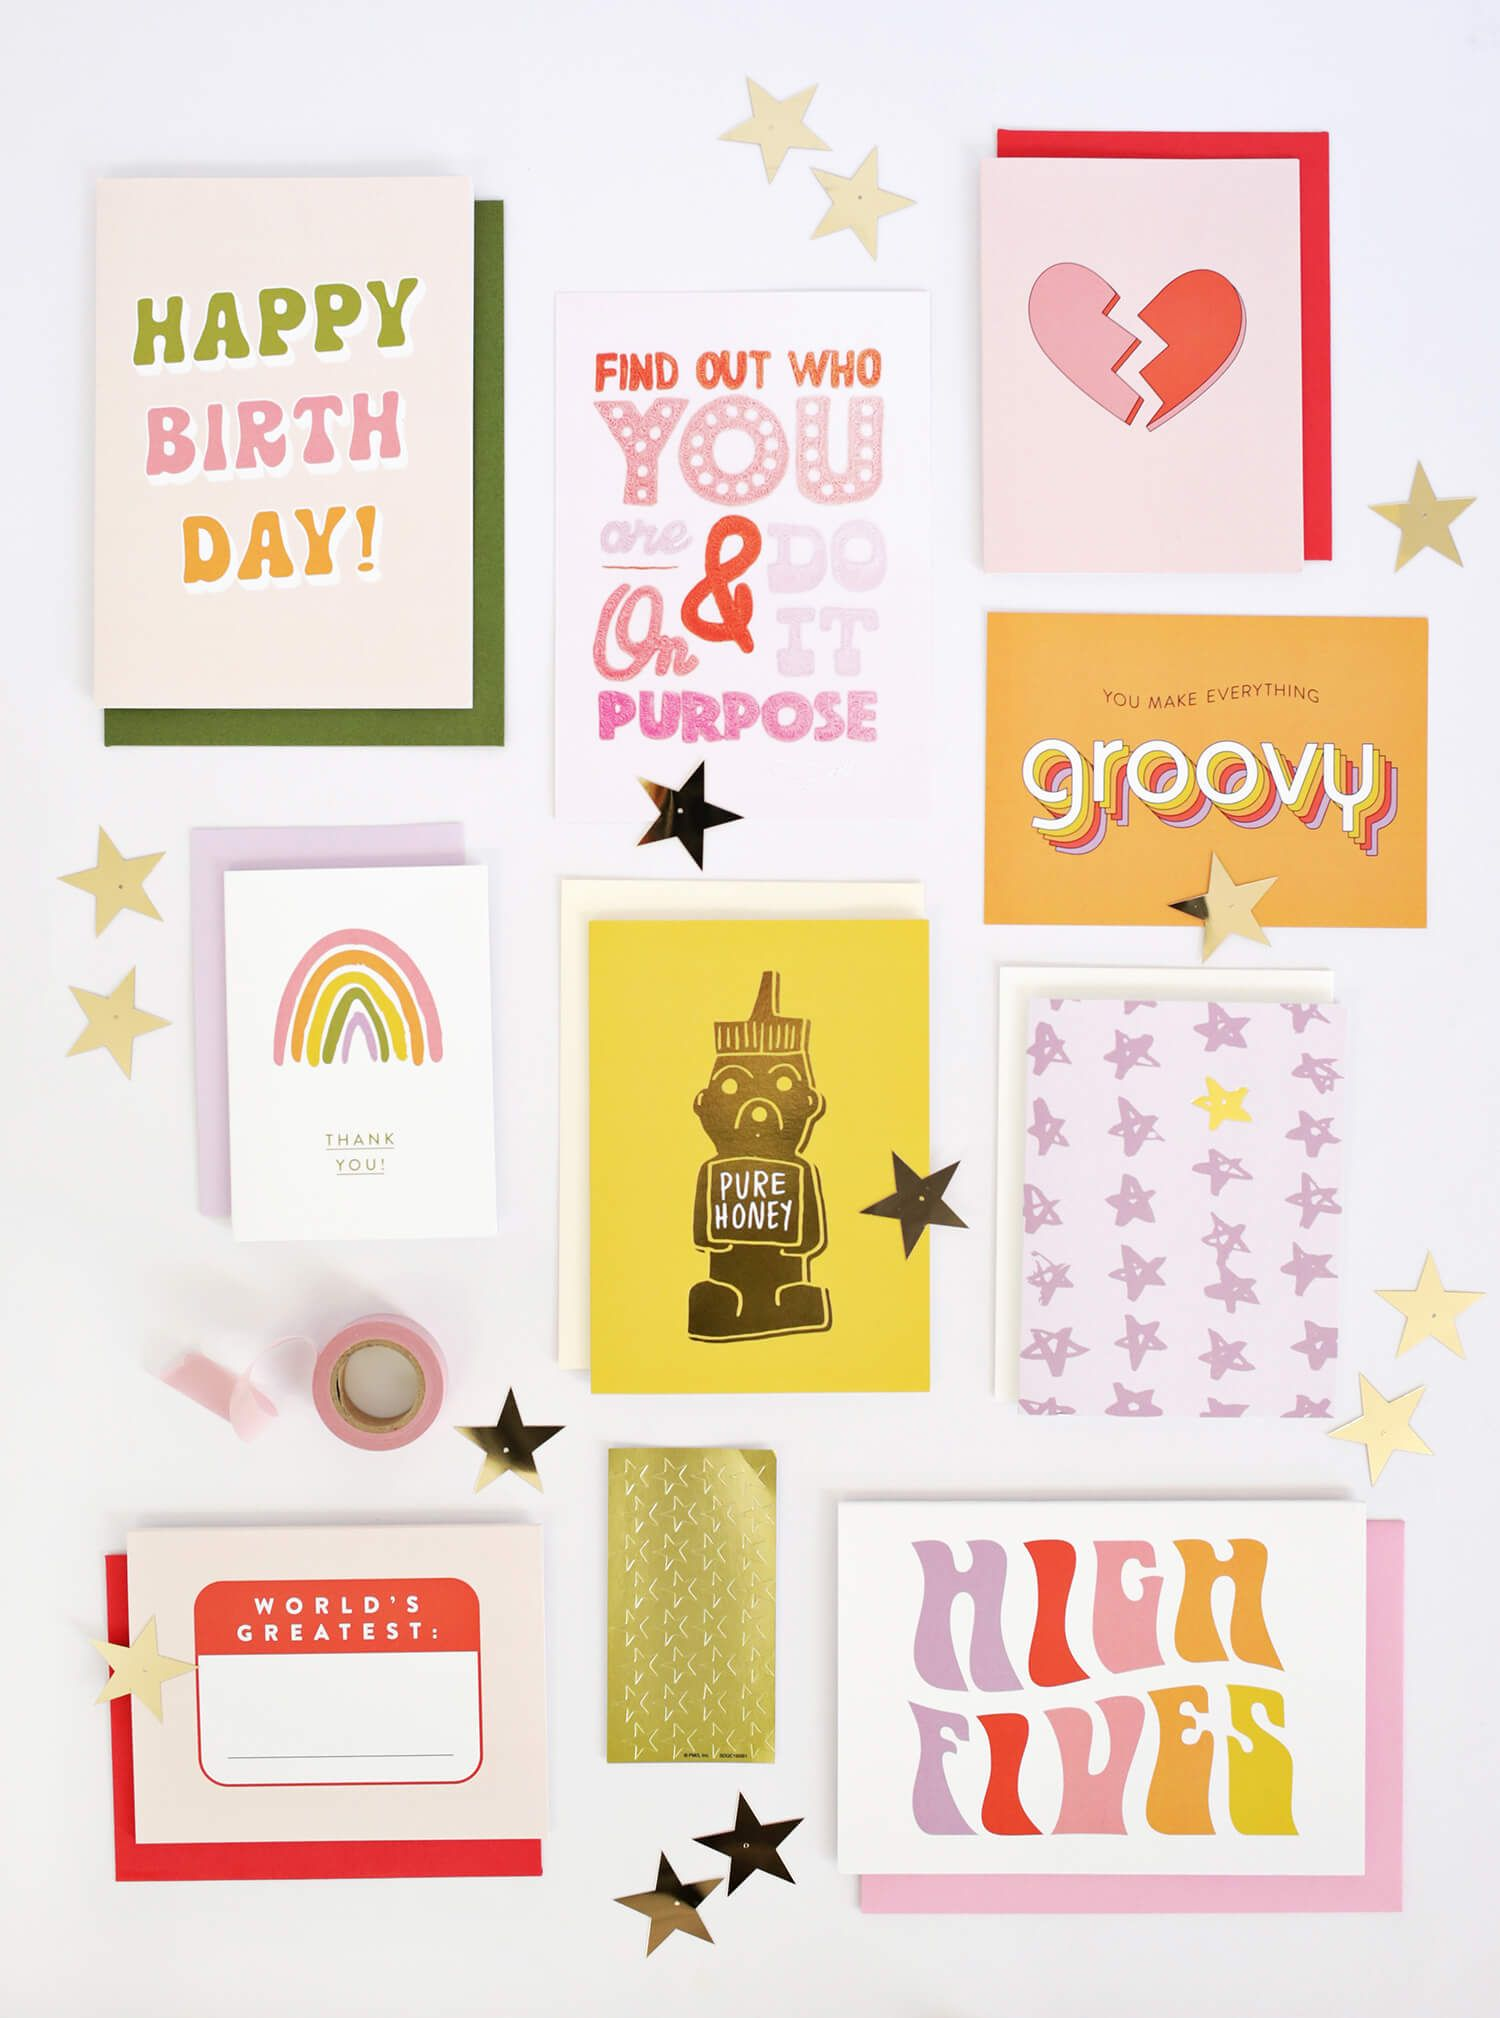 Happy Mail By Oui Fresh Greeting Cards Stationery Pinterest